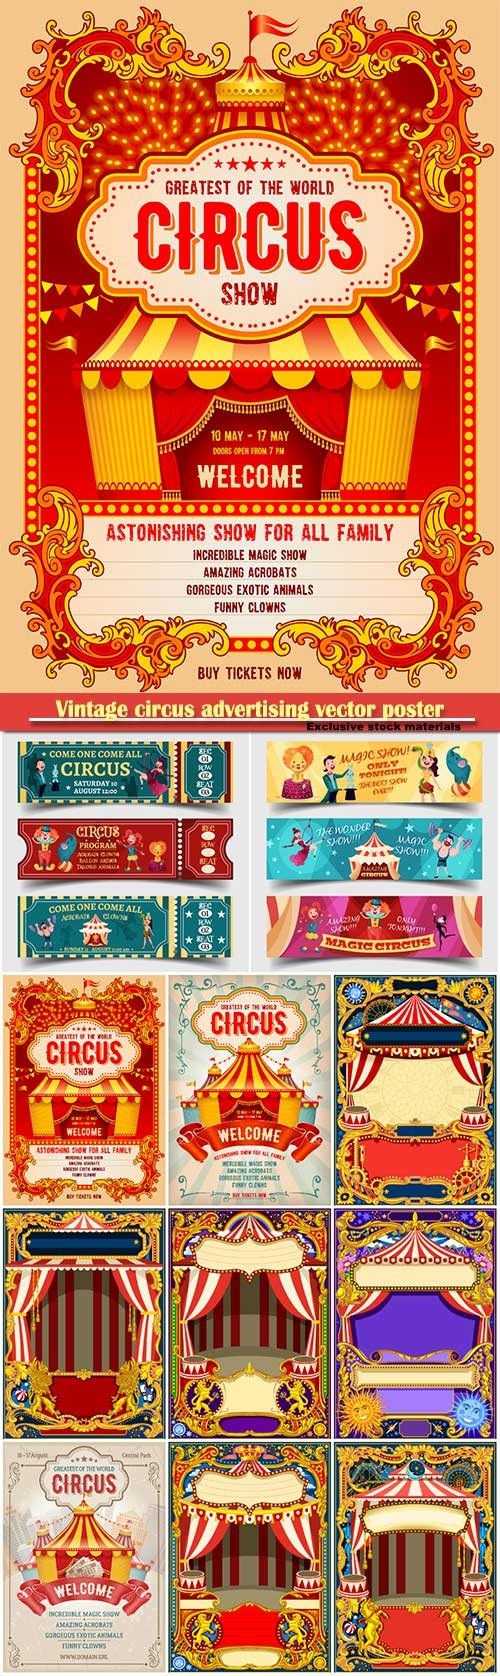 Vintage circus advertising vector poster or flyer with big circus marquee